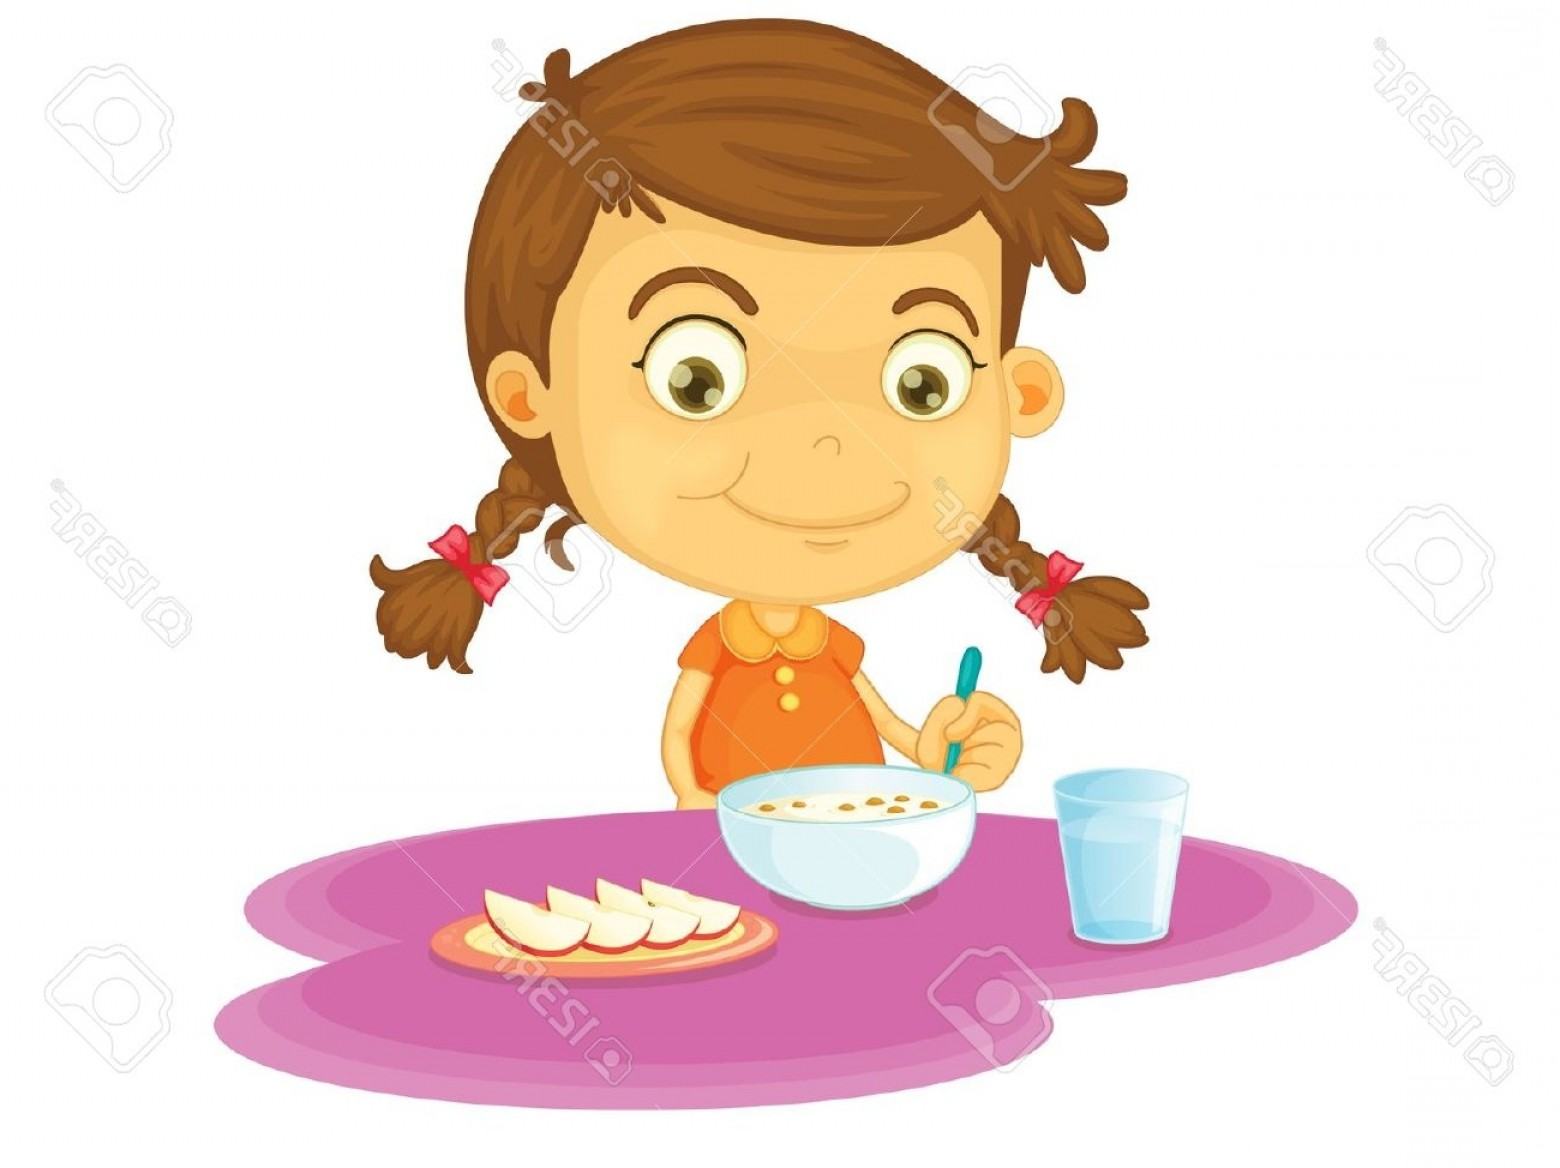 1560x1168 Child Eating Breakfast Clipart